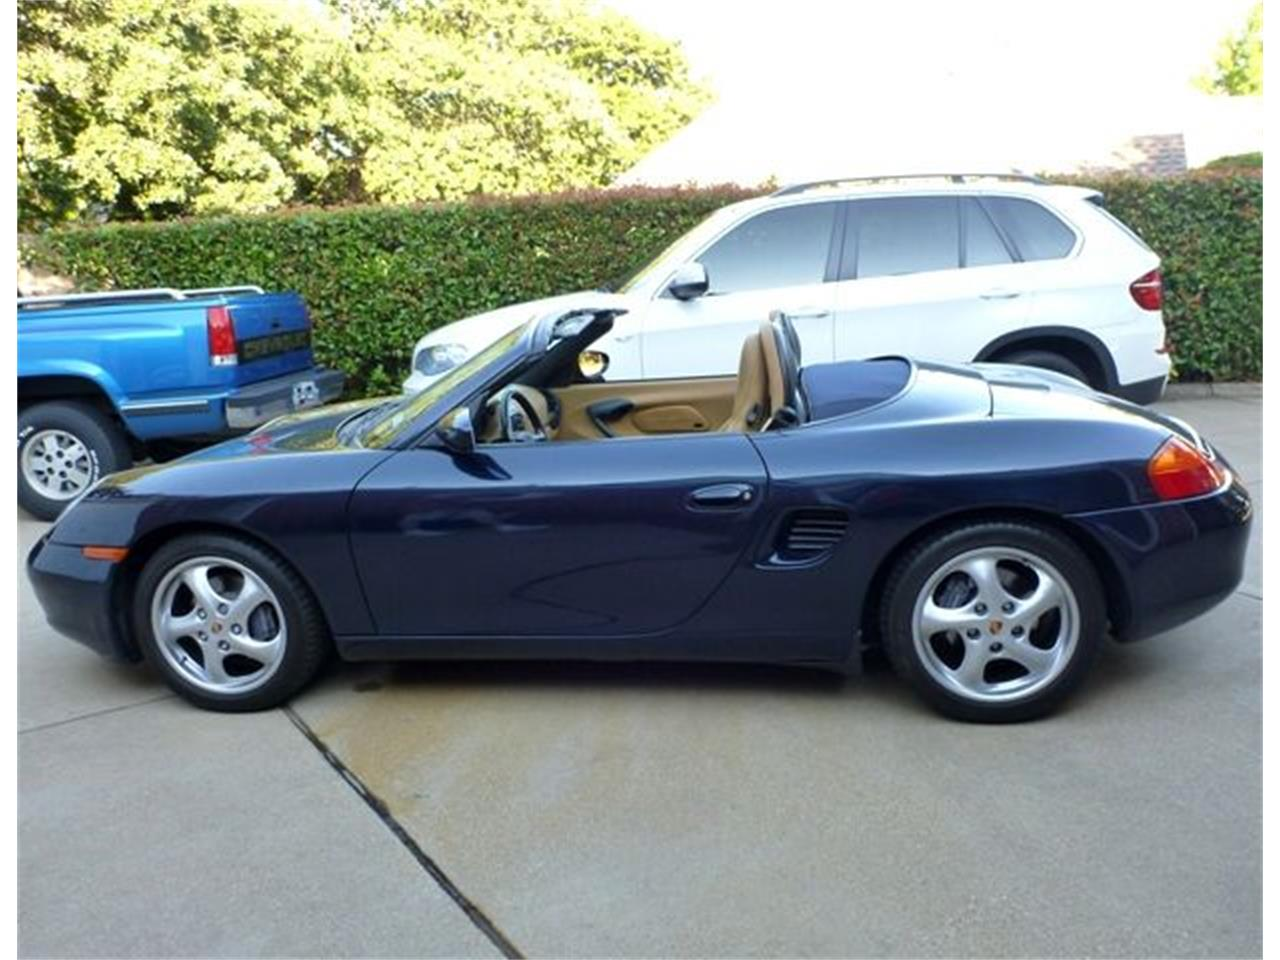 Large Picture of '99 Boxster located in Arlington Texas - $8,500.00 Offered by Classical Gas Enterprises - LF20